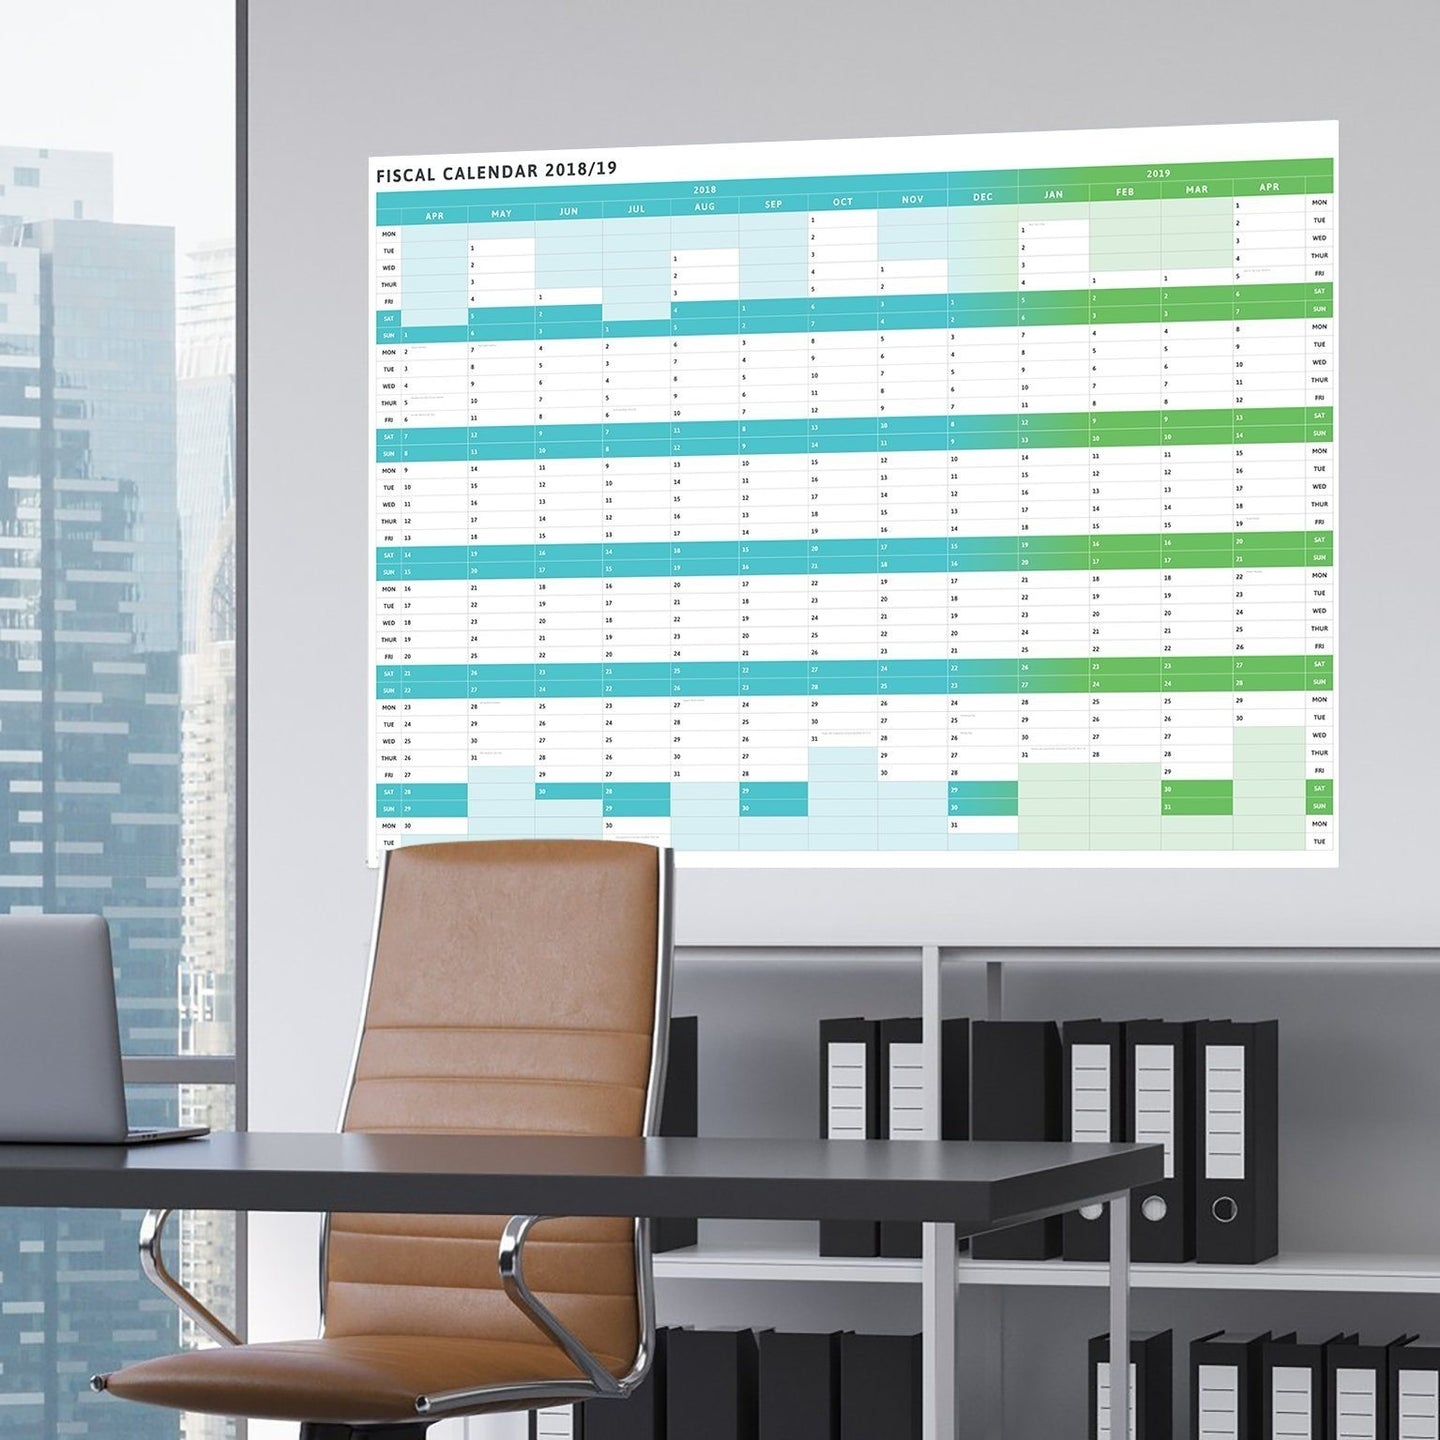 Planners - Tax Planner - 2018/9 Large Fiscal Wall Planner